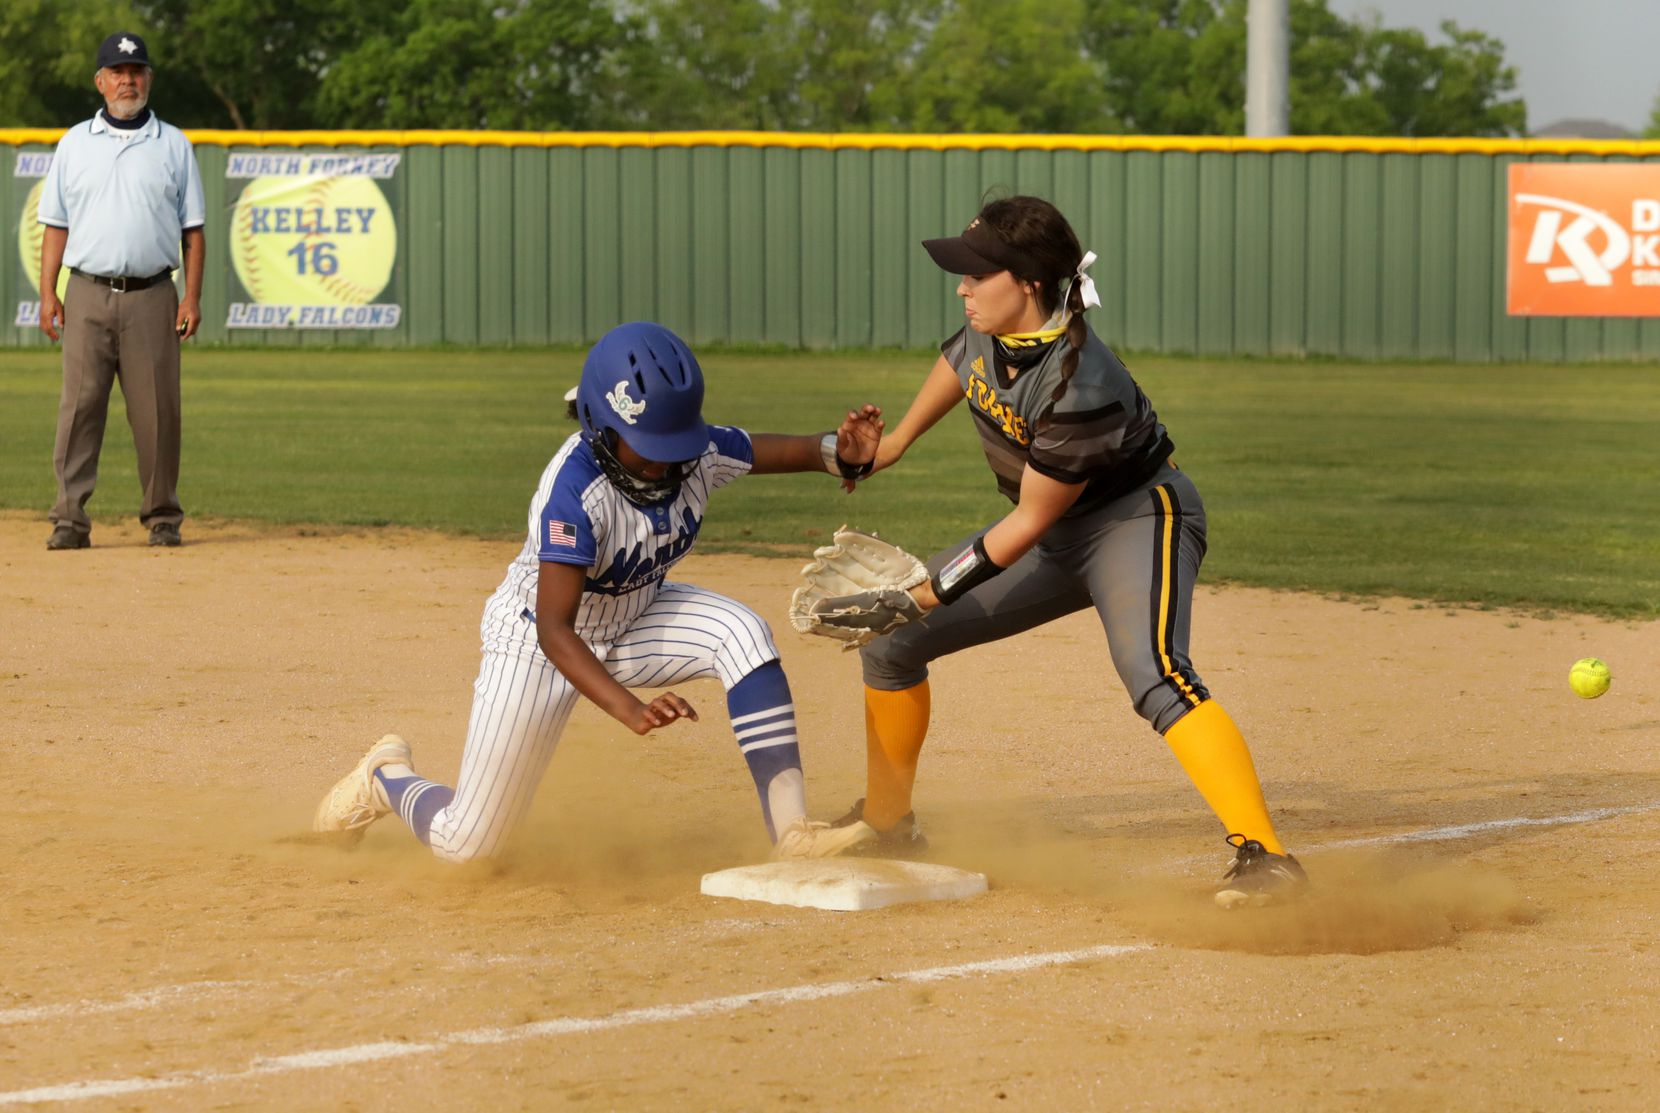 Hailey Hughes, left, attempts a return to first base against Savanna Hughes during a softball game between Forney at North Forney at North Forney High School in Forney, TX, on Apr. 9, 2021. (Jason Janik/Special Contributor)